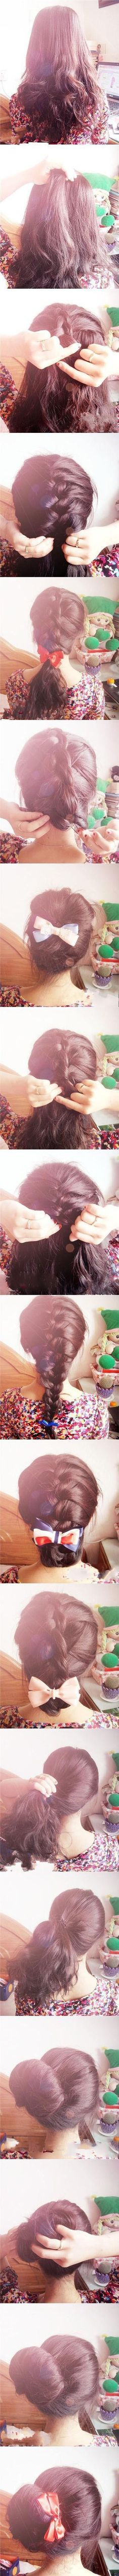 Bows and braids how-to